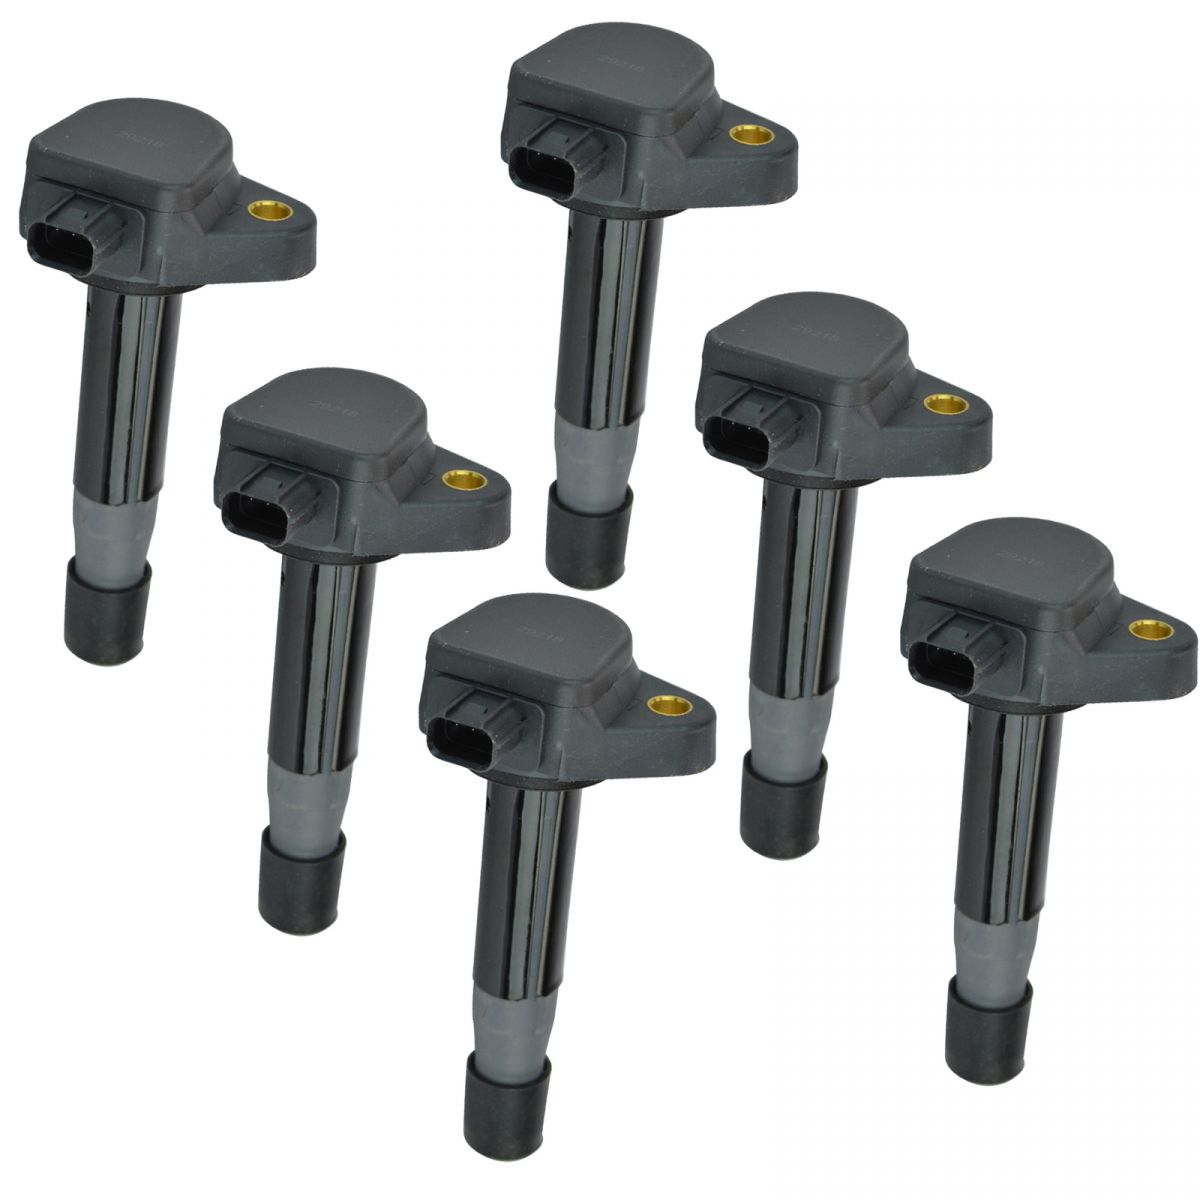 Acura Rl 2009 Price: Ignition Coil Set Of 6 For Honda Accord Crosstour Odyssey